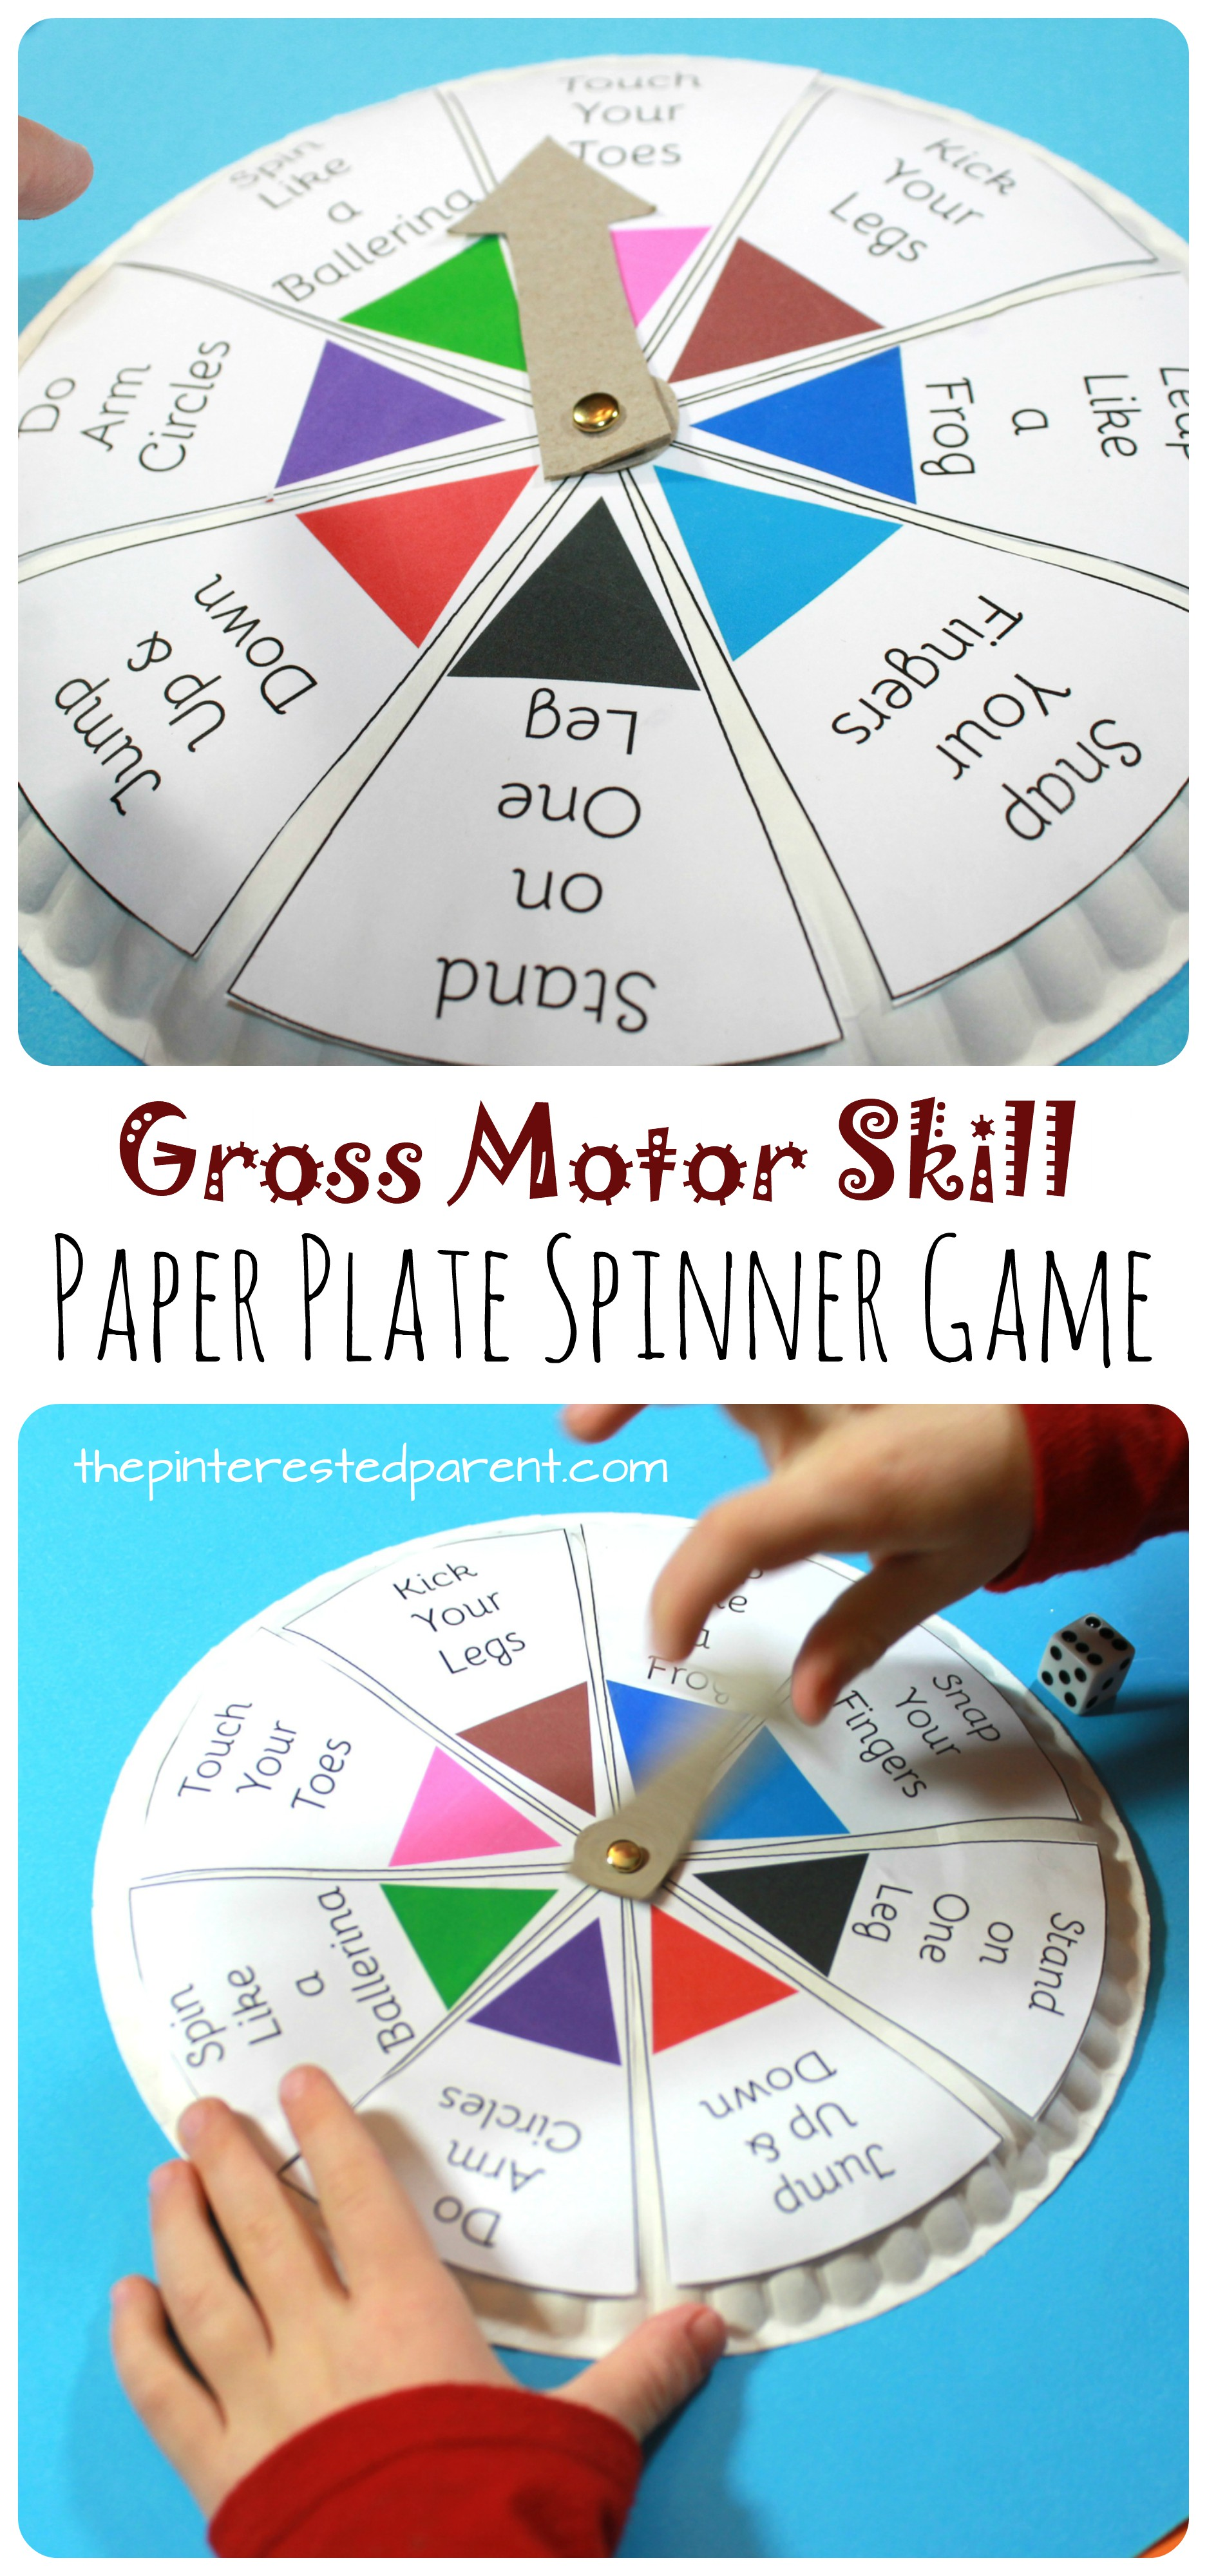 Free Printable Template for this Spin Roll u0026 Count Gross Motor Skill Game - paper  sc 1 st  The Pinterested Parent & Spin Roll u0026 Count Gross Motor Skill Game u2013 The Pinterested Parent